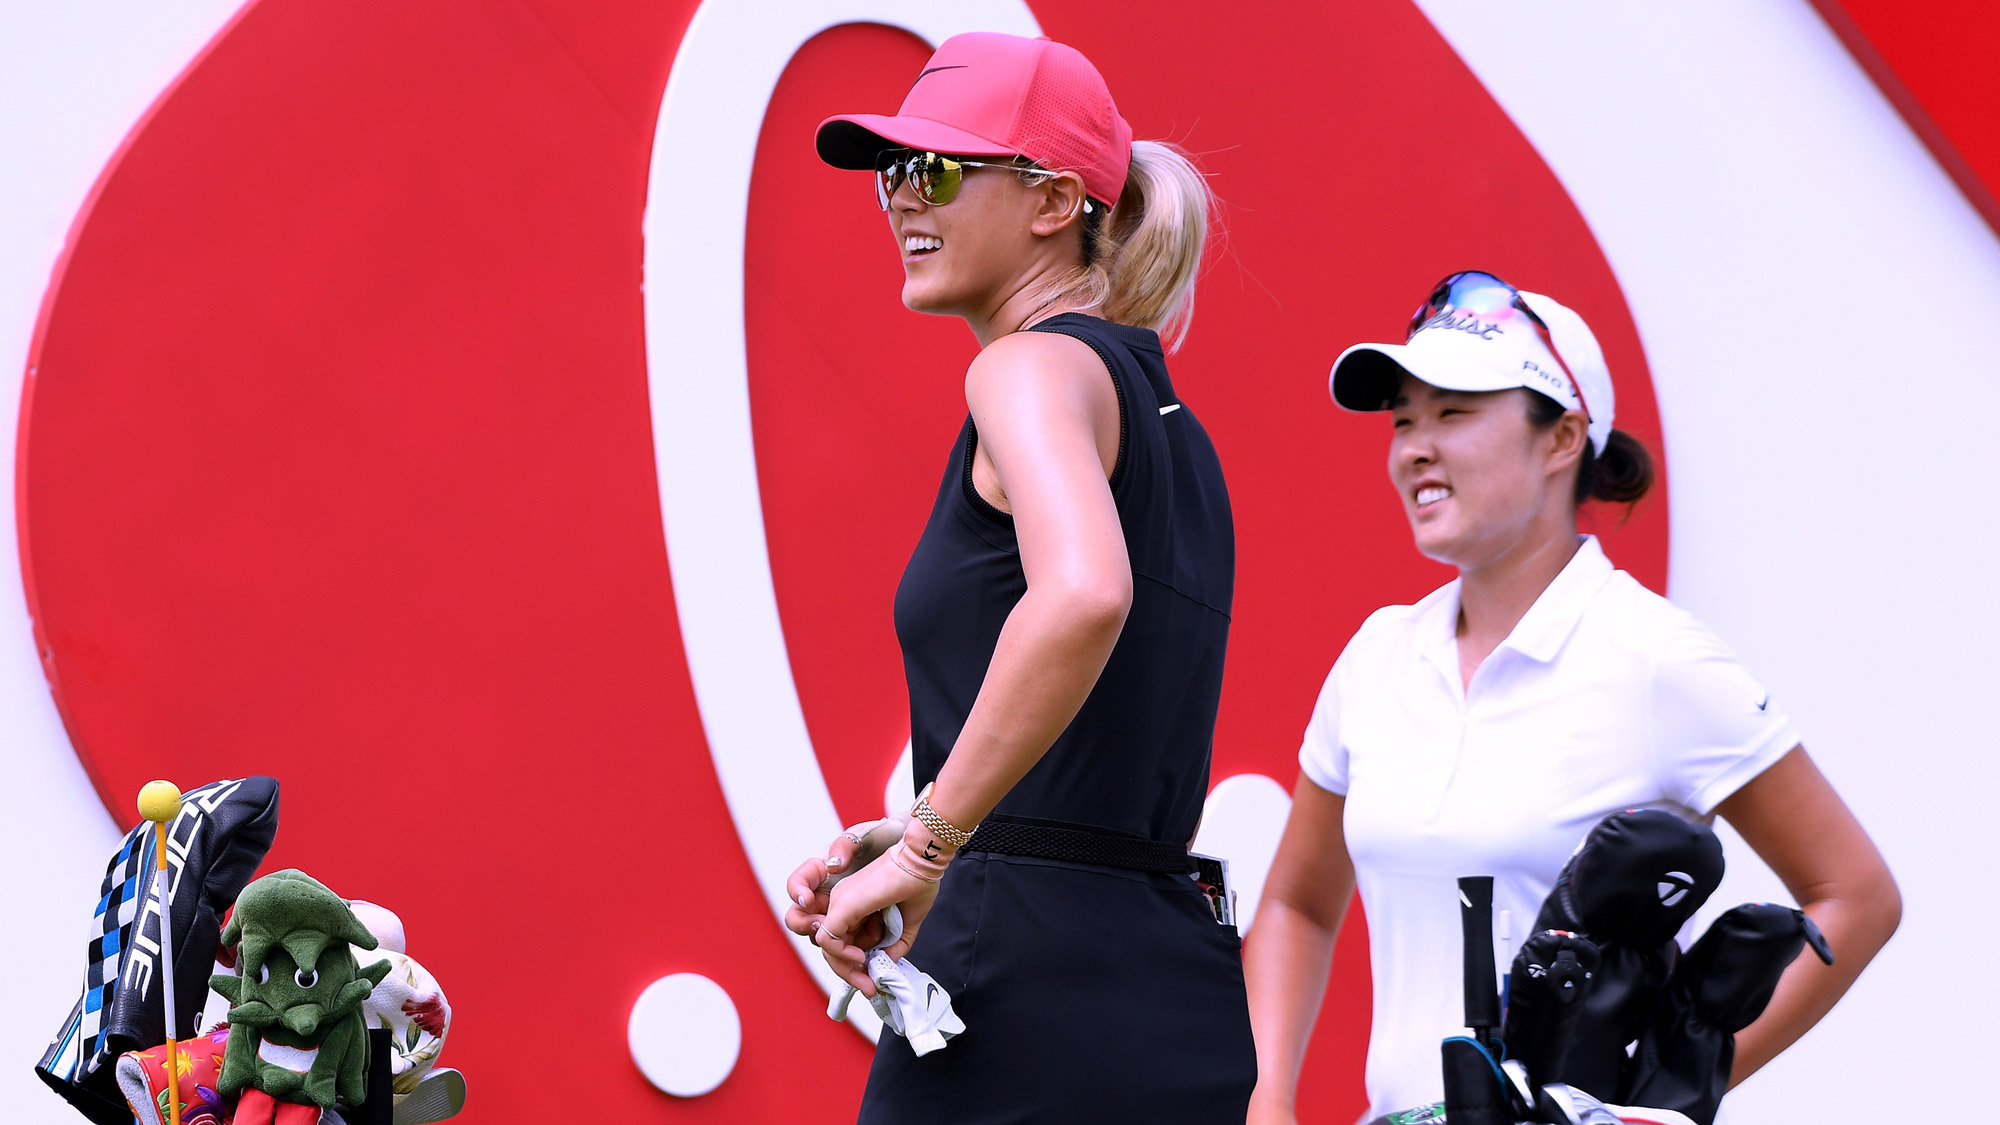 Michelle Wie Gets Ready to Tie on Saturday